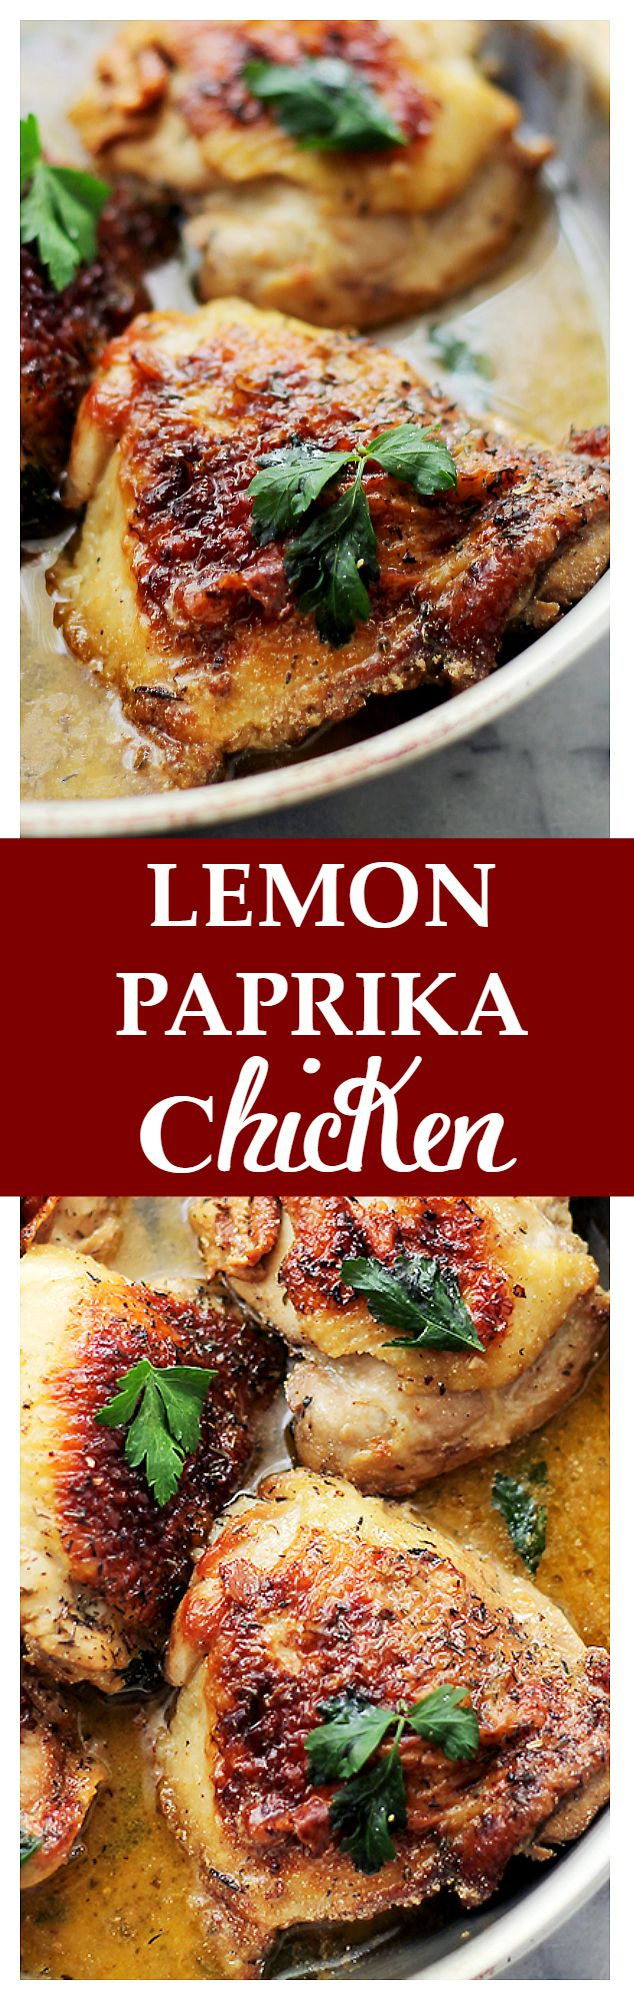 Lemon Paprika Chicken | www.diethood.com | Marinated in a lemon and paprika mixture with garlic and thyme, these incredible chicken thighs are quick and easy to make, and they are perfect for a weeknight meal.